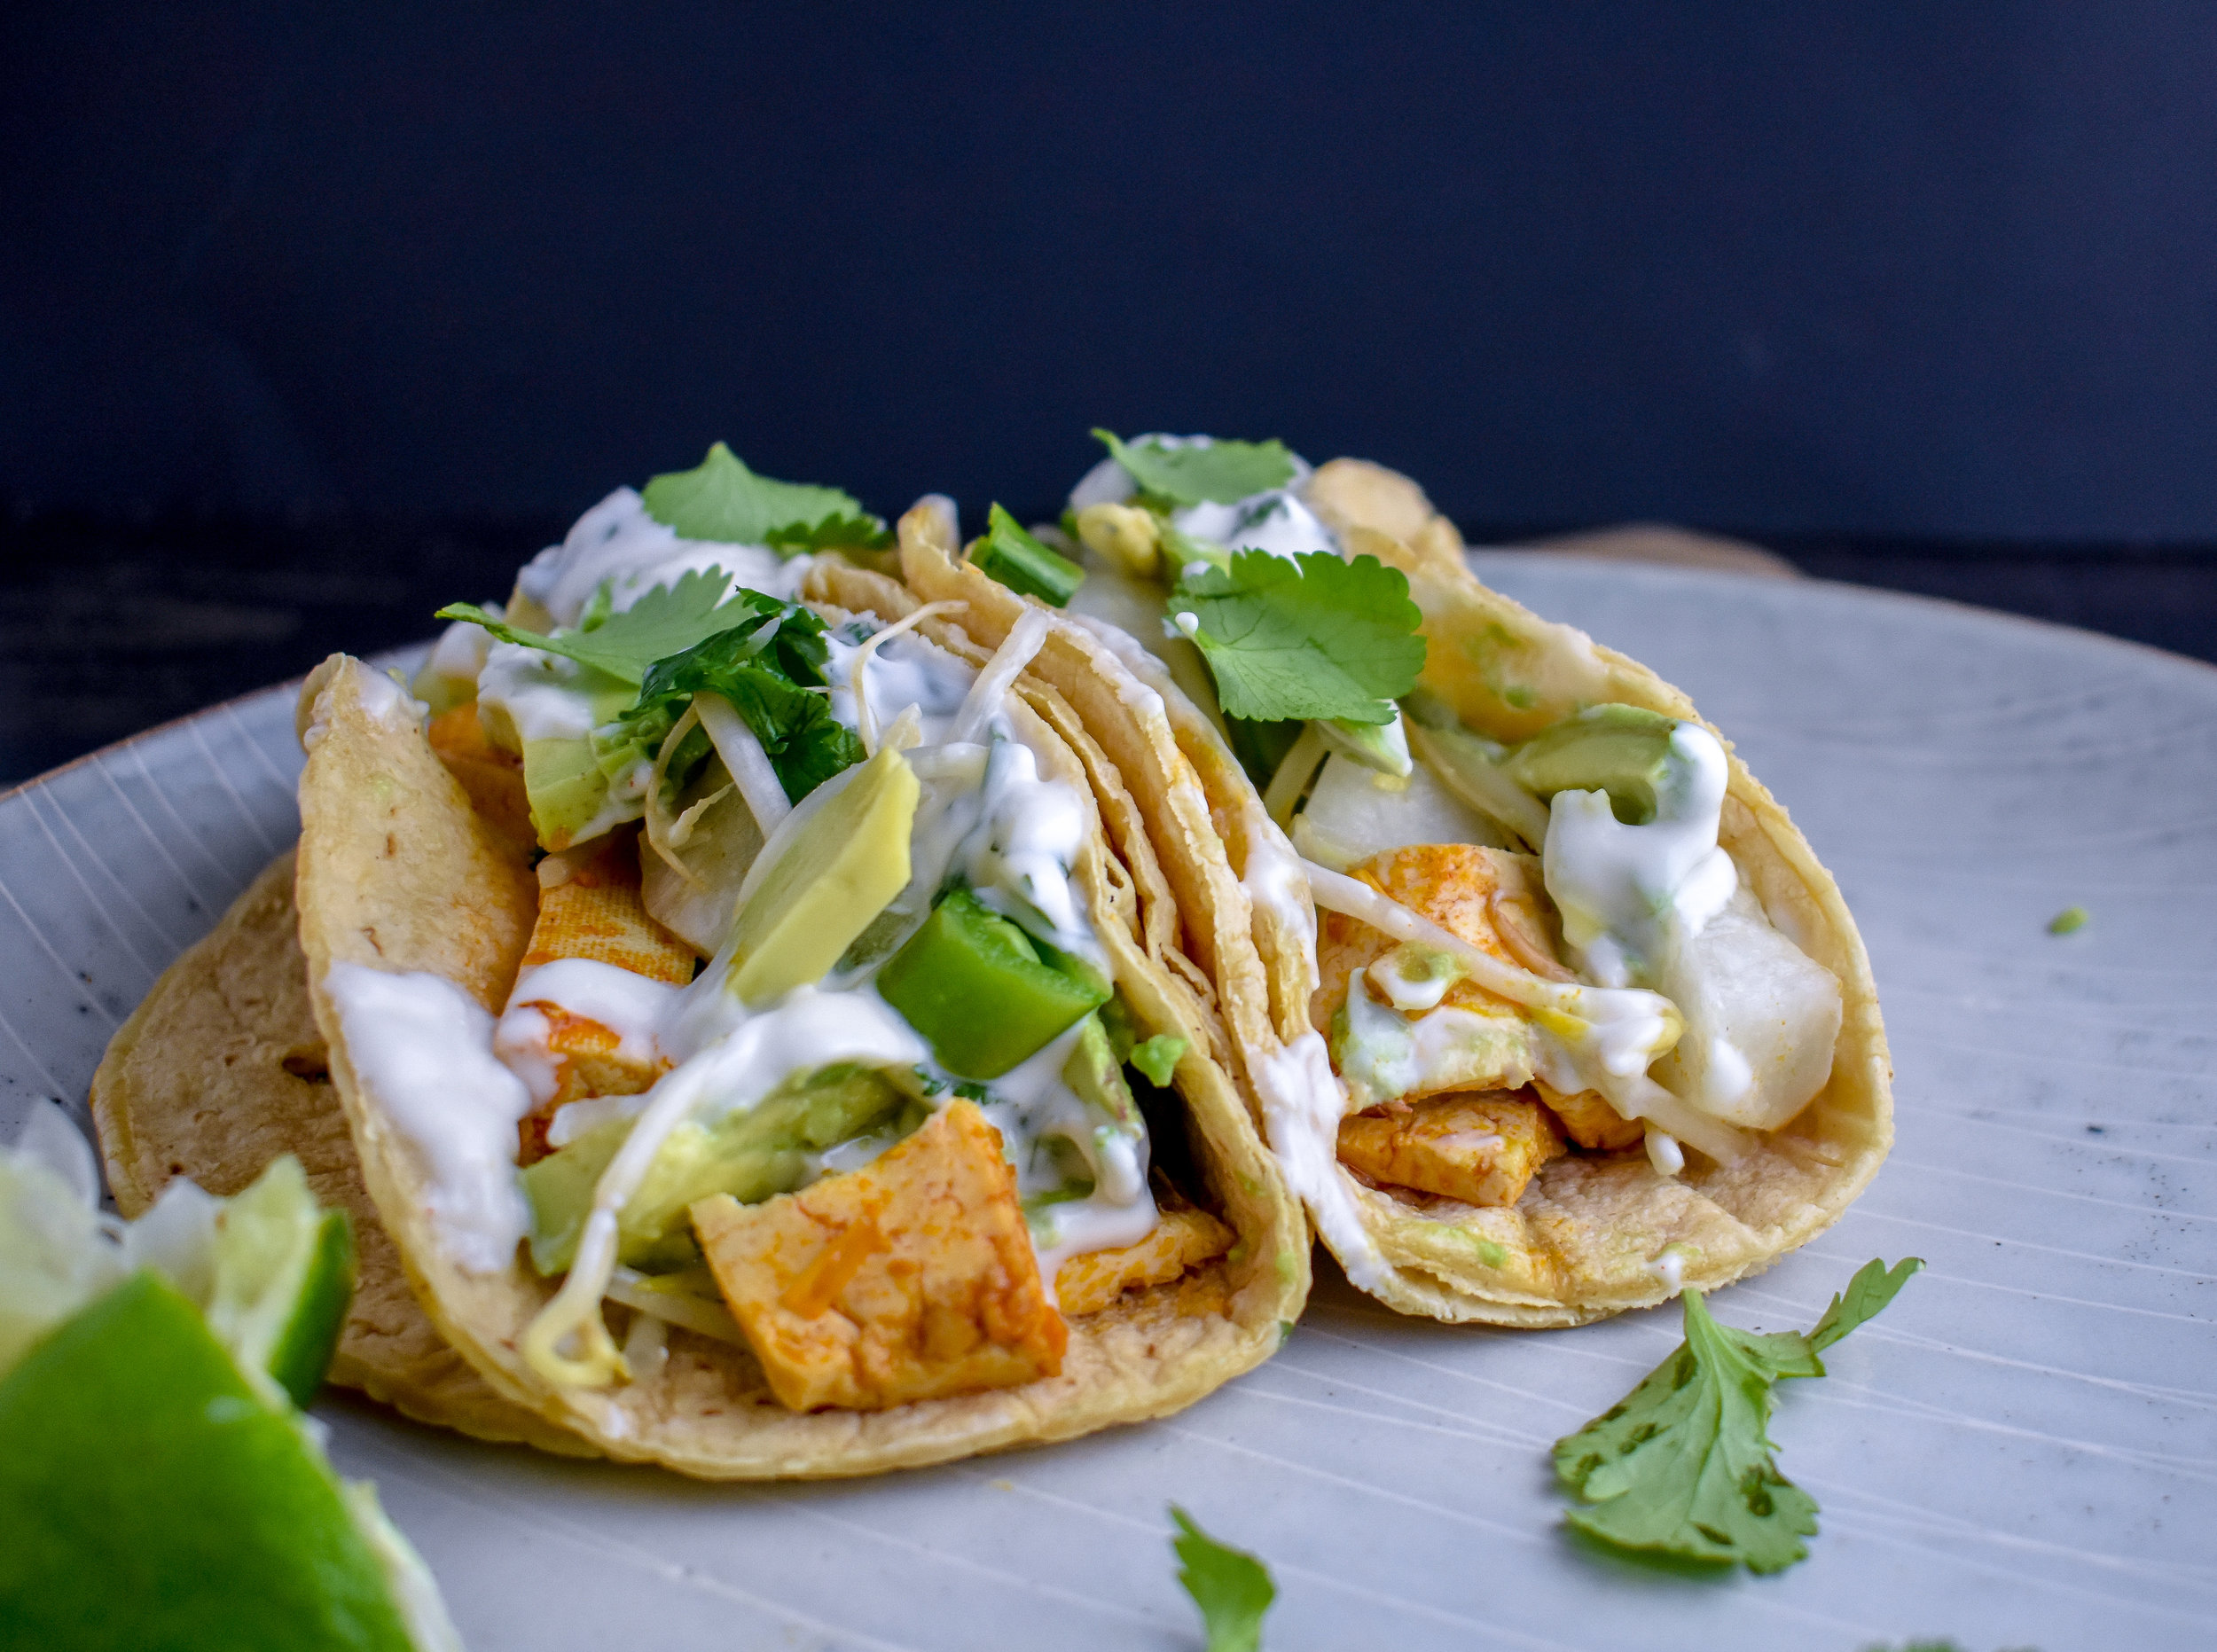 6. To form your tacos. Layer on some tofu strips, slaw, avocado slices, and the aioli. Top with a few pieces of fresh cilantro and a squeeze of lime juice to take it to the next level.